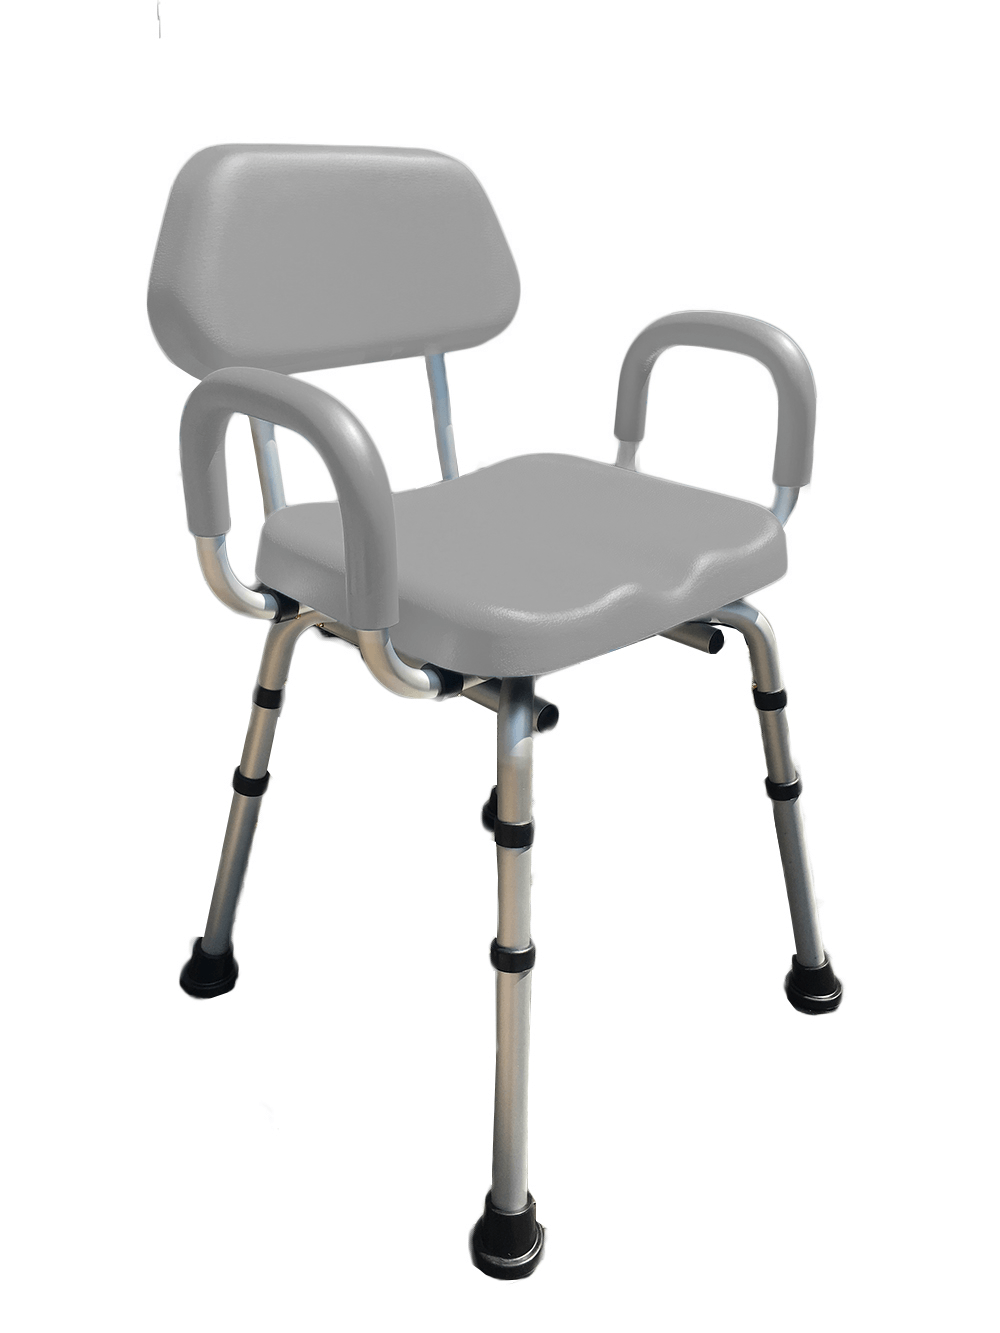 ComfortAble(tm) Deluxe Bath / Shower Chair - Padded with Armrests